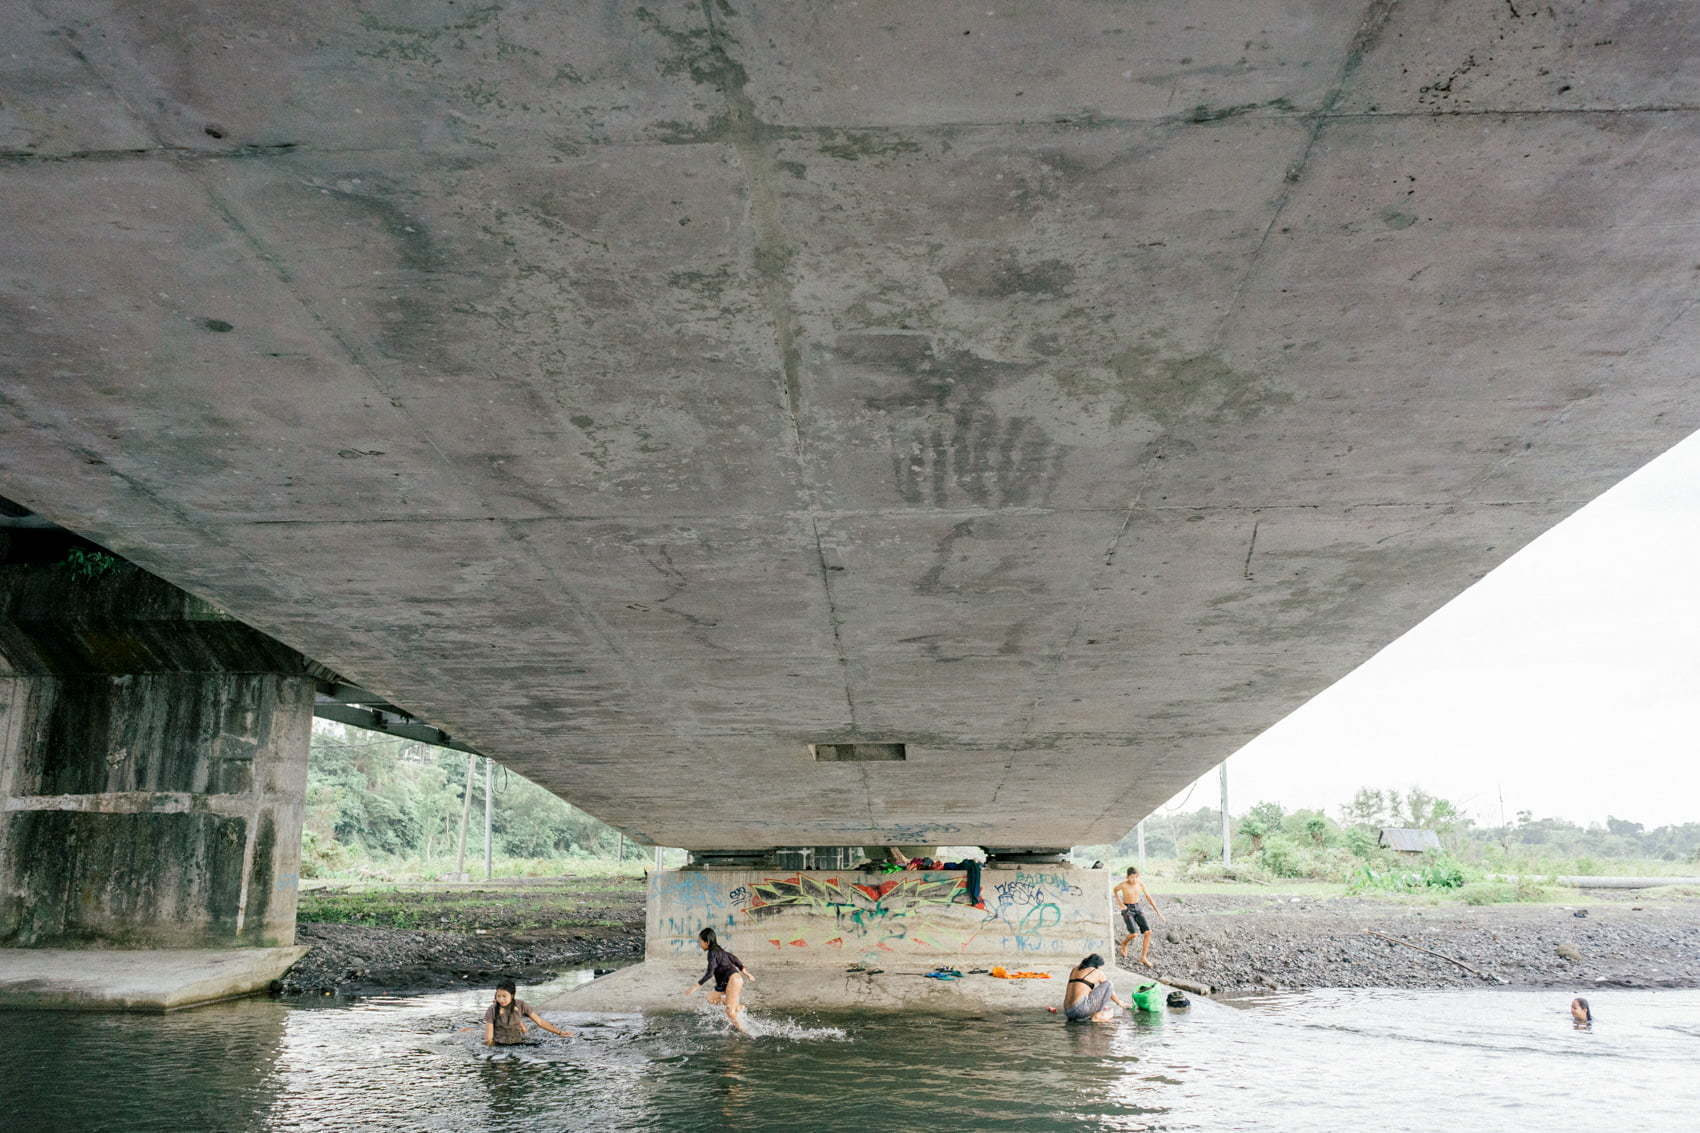 Photo Journal under the Gunaksa bridge in Klungkung